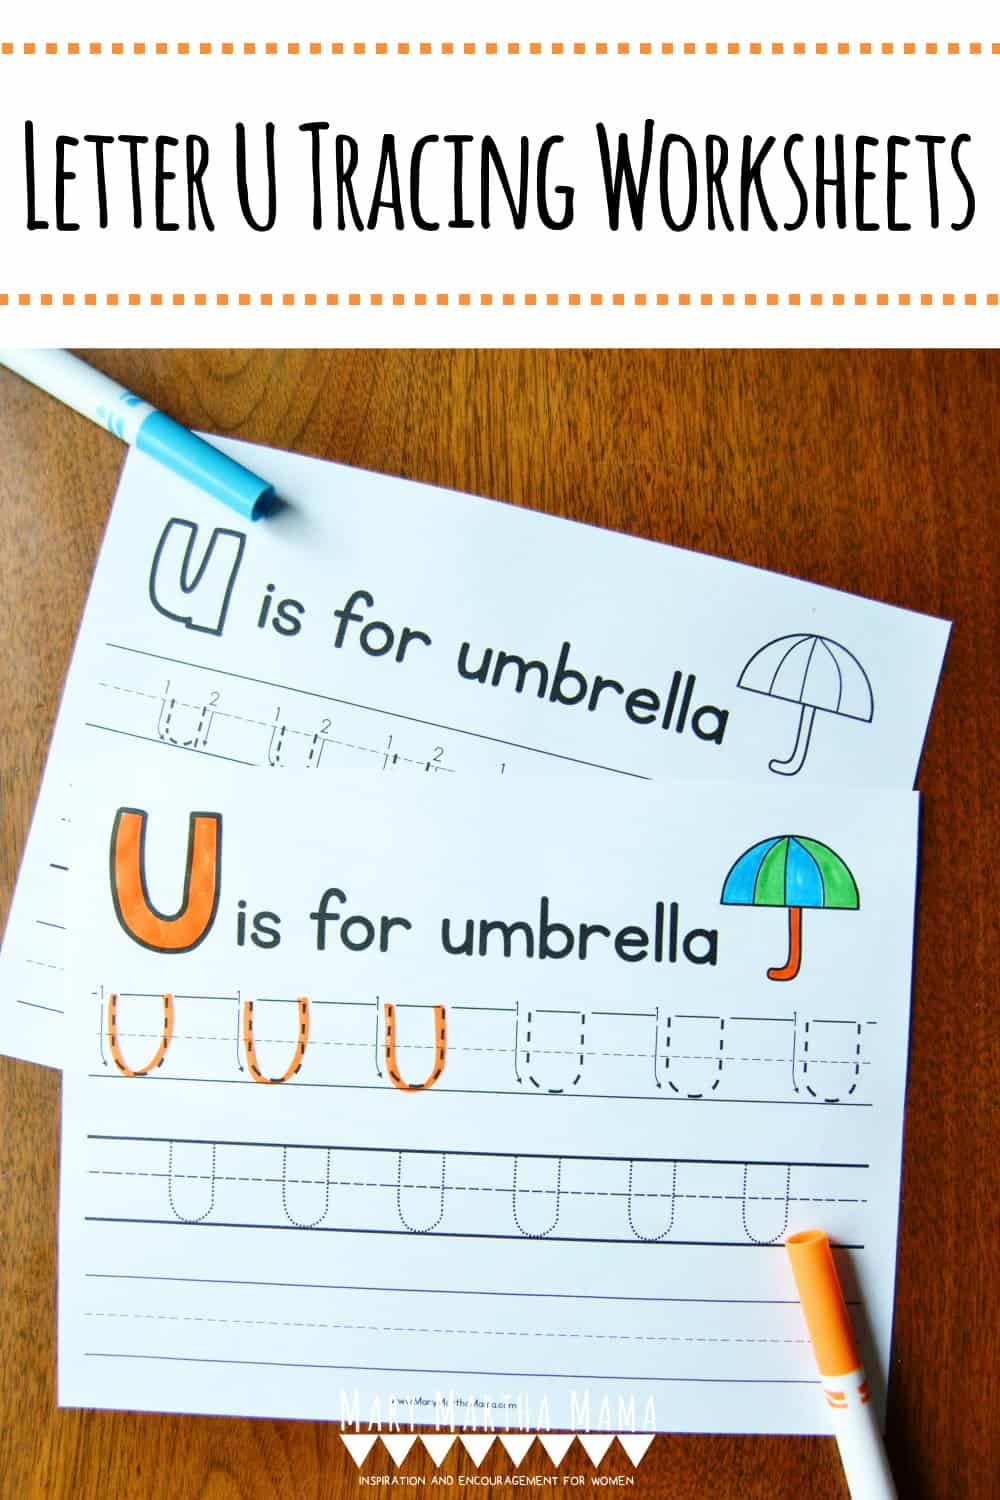 Use these free printable Letter U Tracing Worksheets to help your child learn proper letter formation for upper and lower case letter U.